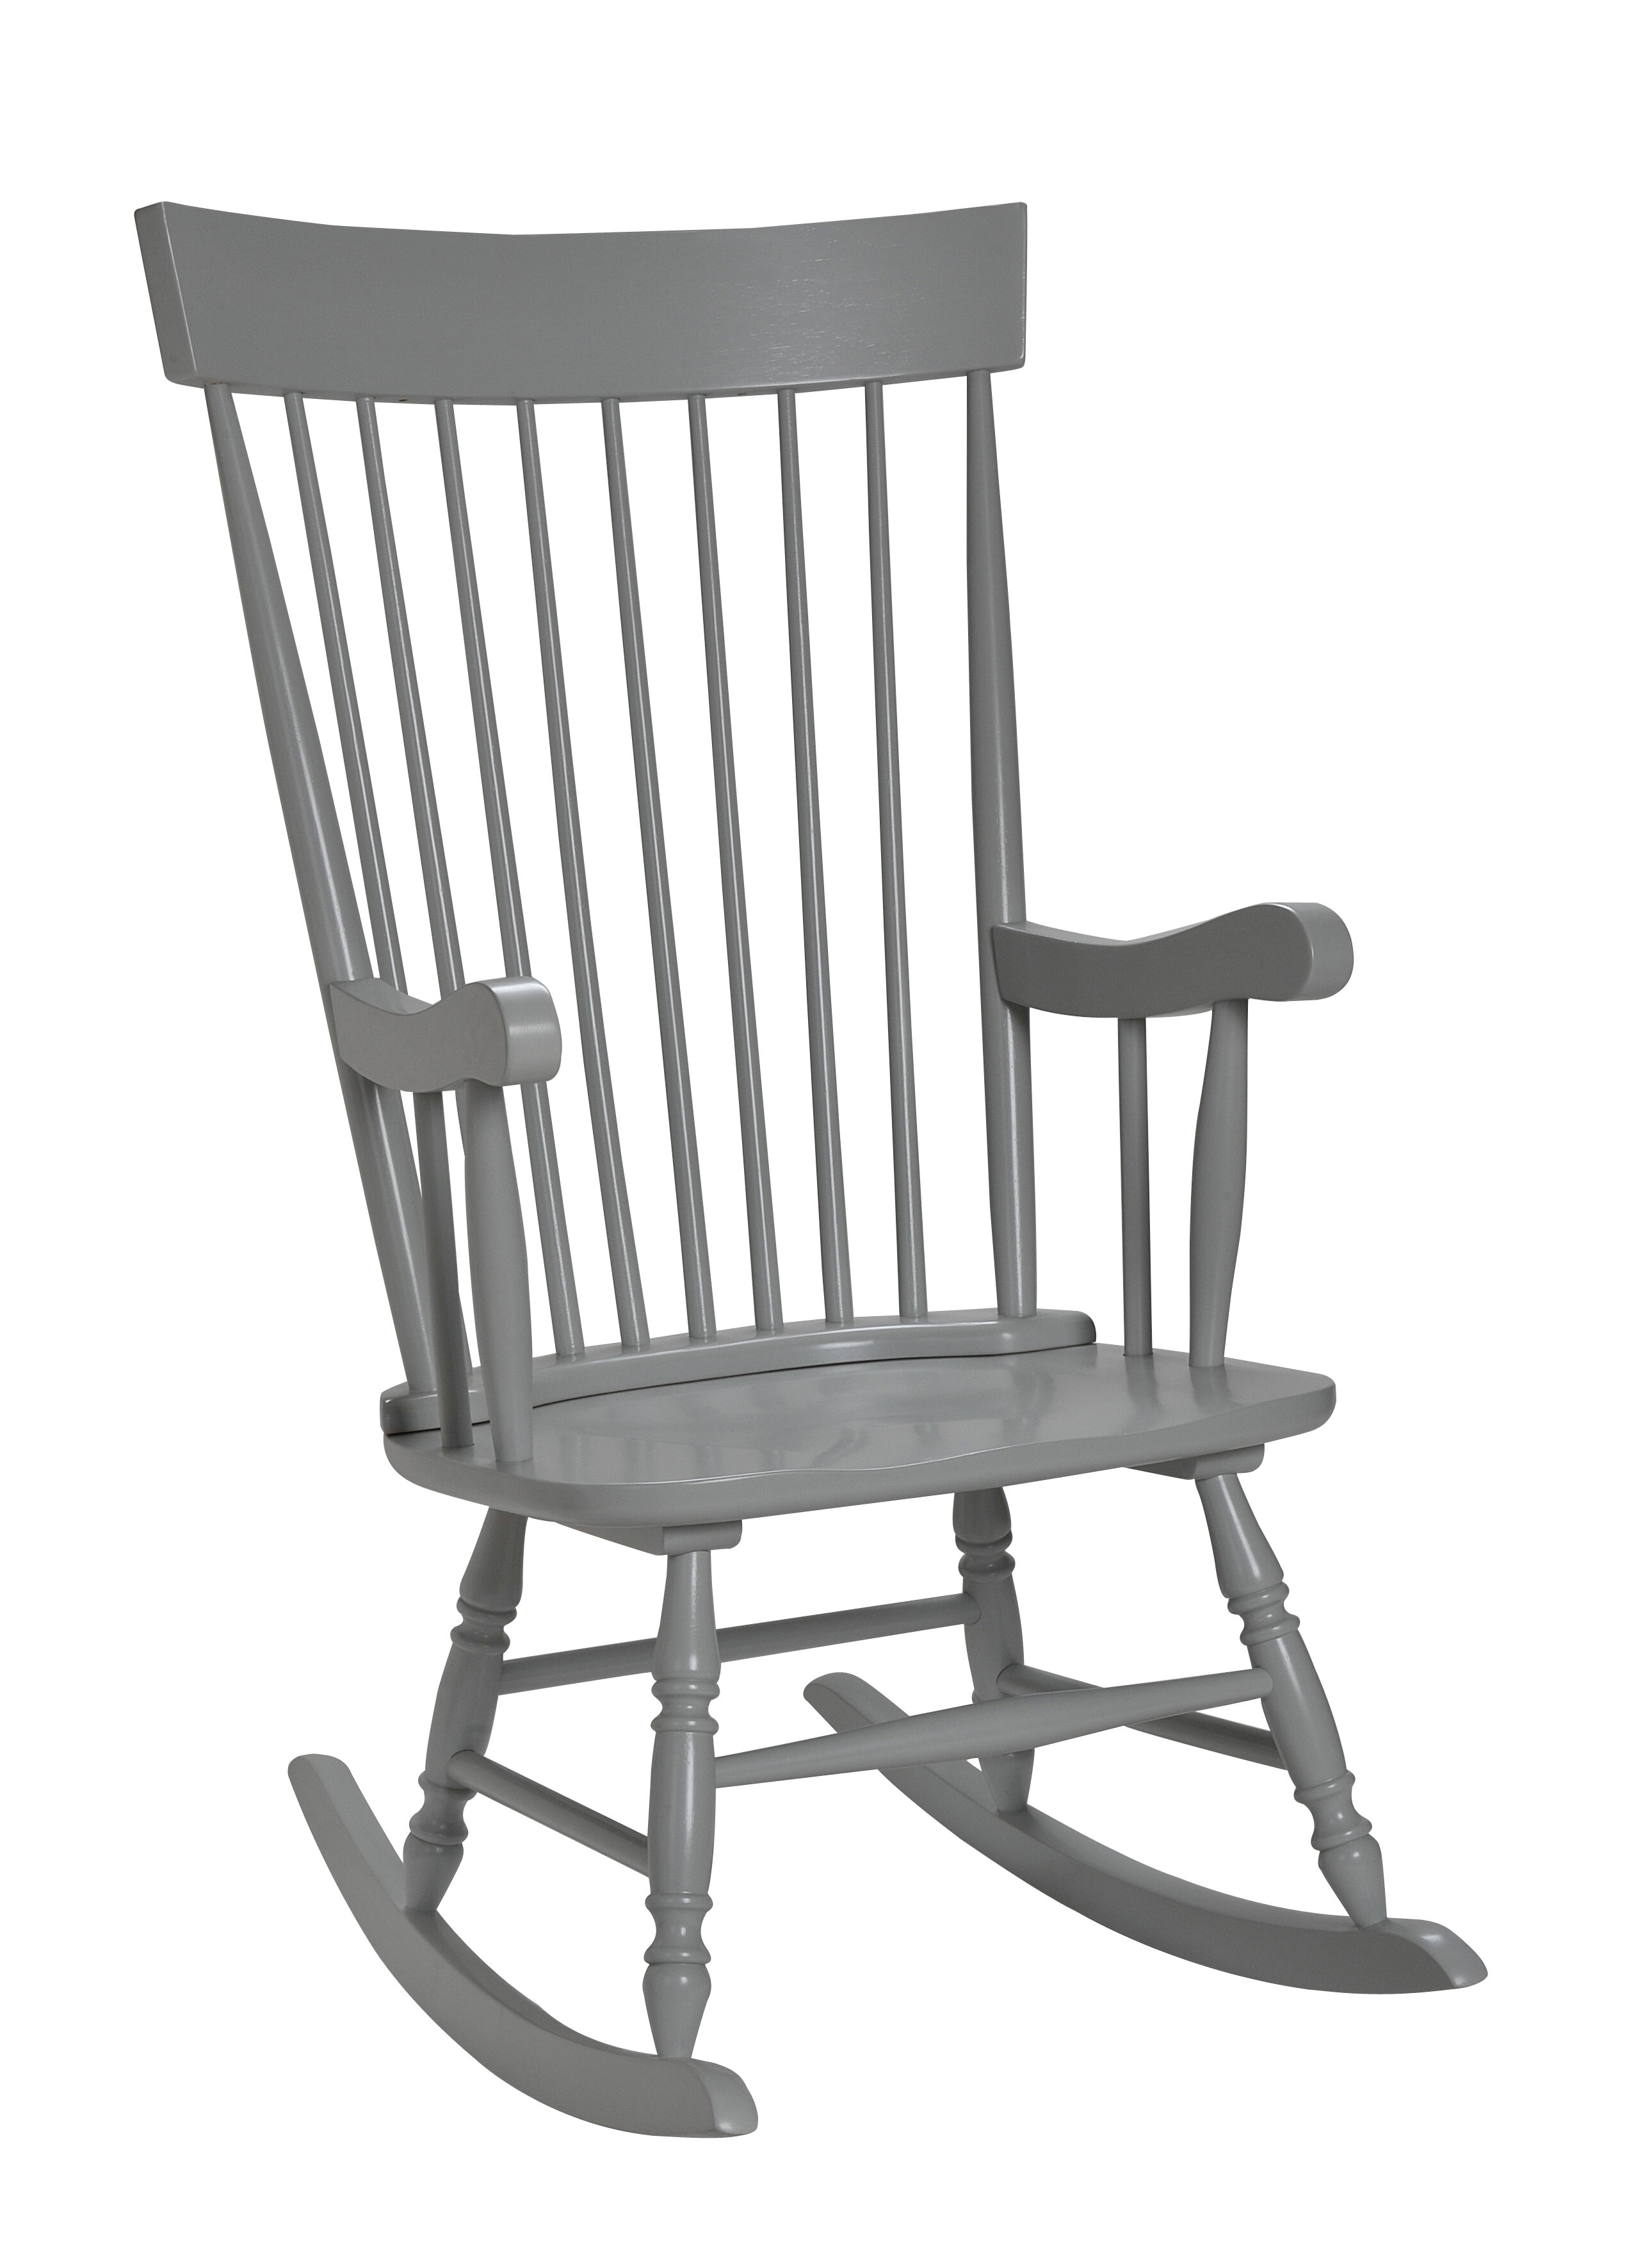 Awe Inspiring Danvers Rocking Chair Gmtry Best Dining Table And Chair Ideas Images Gmtryco